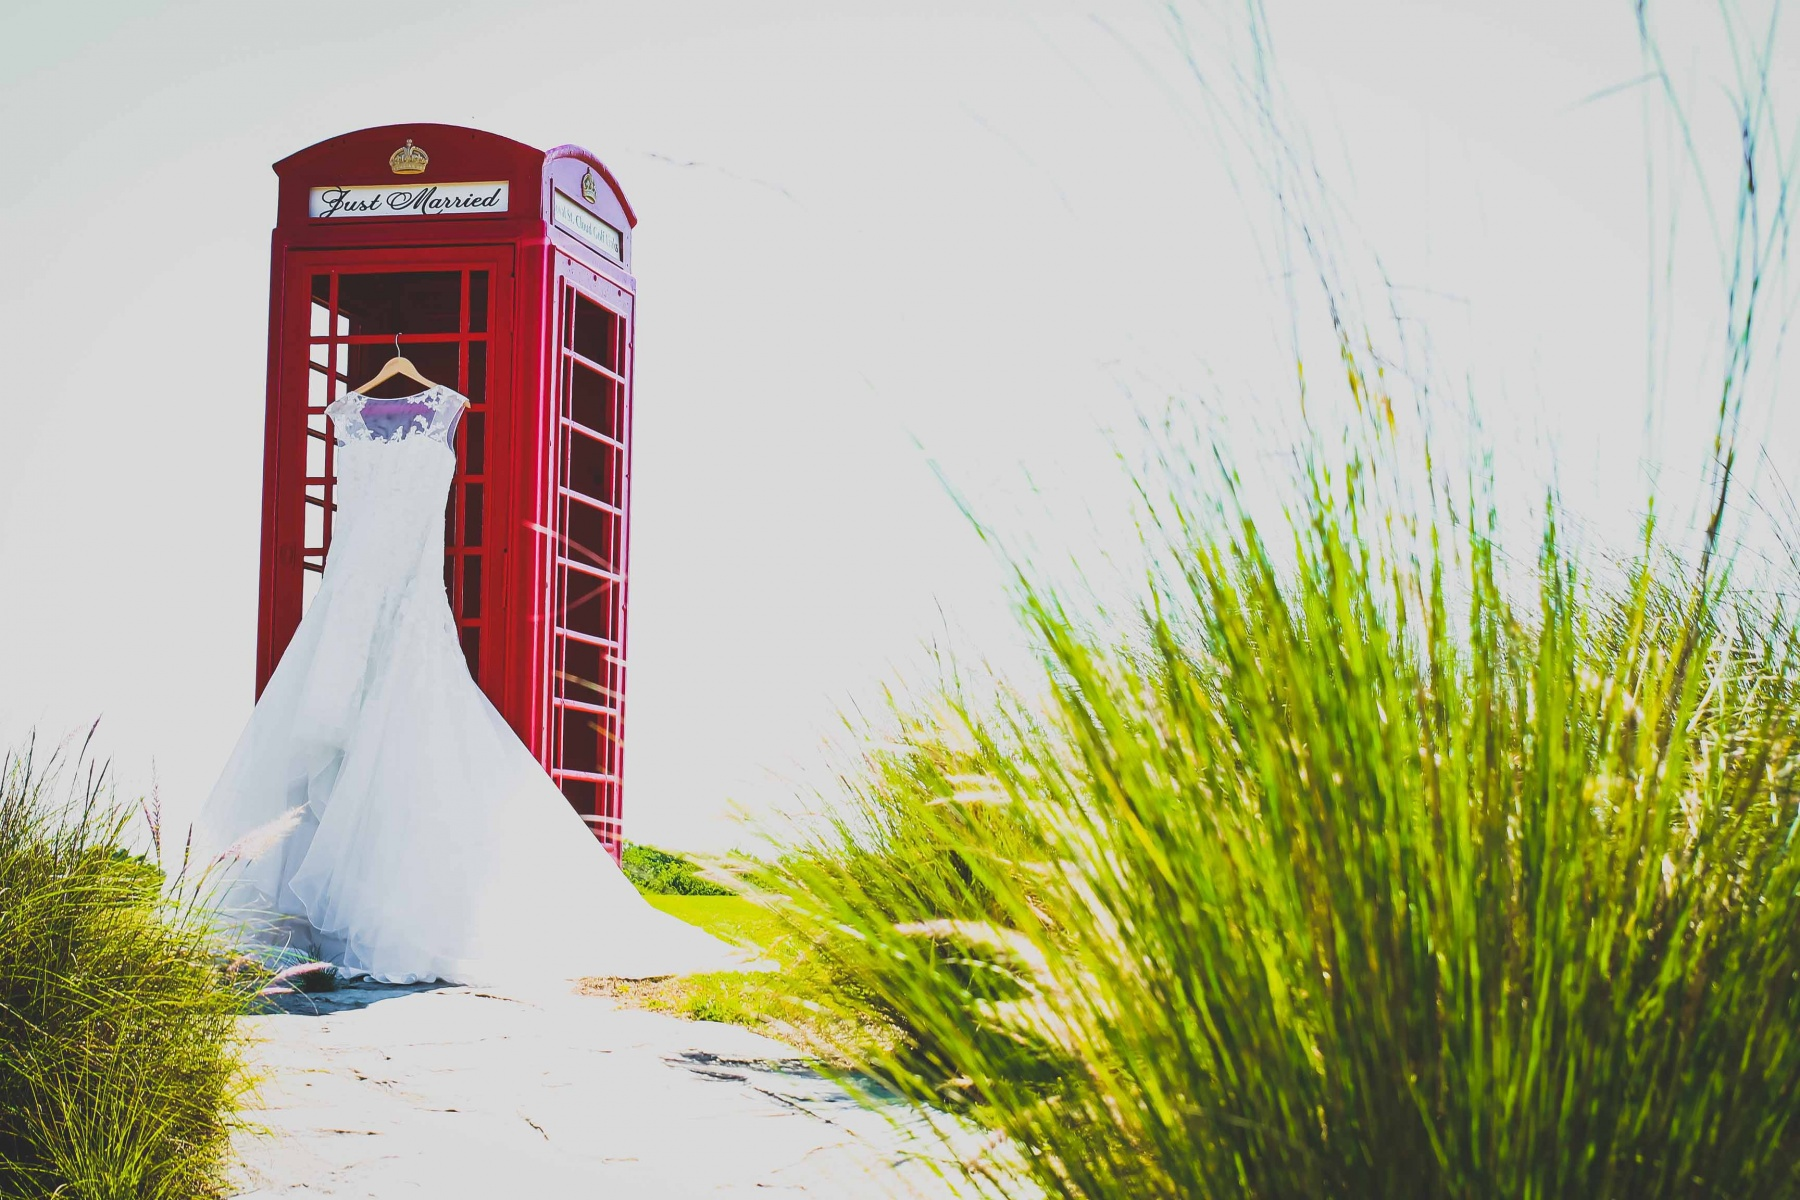 ROYAL-CREST-ROOM-PHONE-BOOTH-GALLERY_092